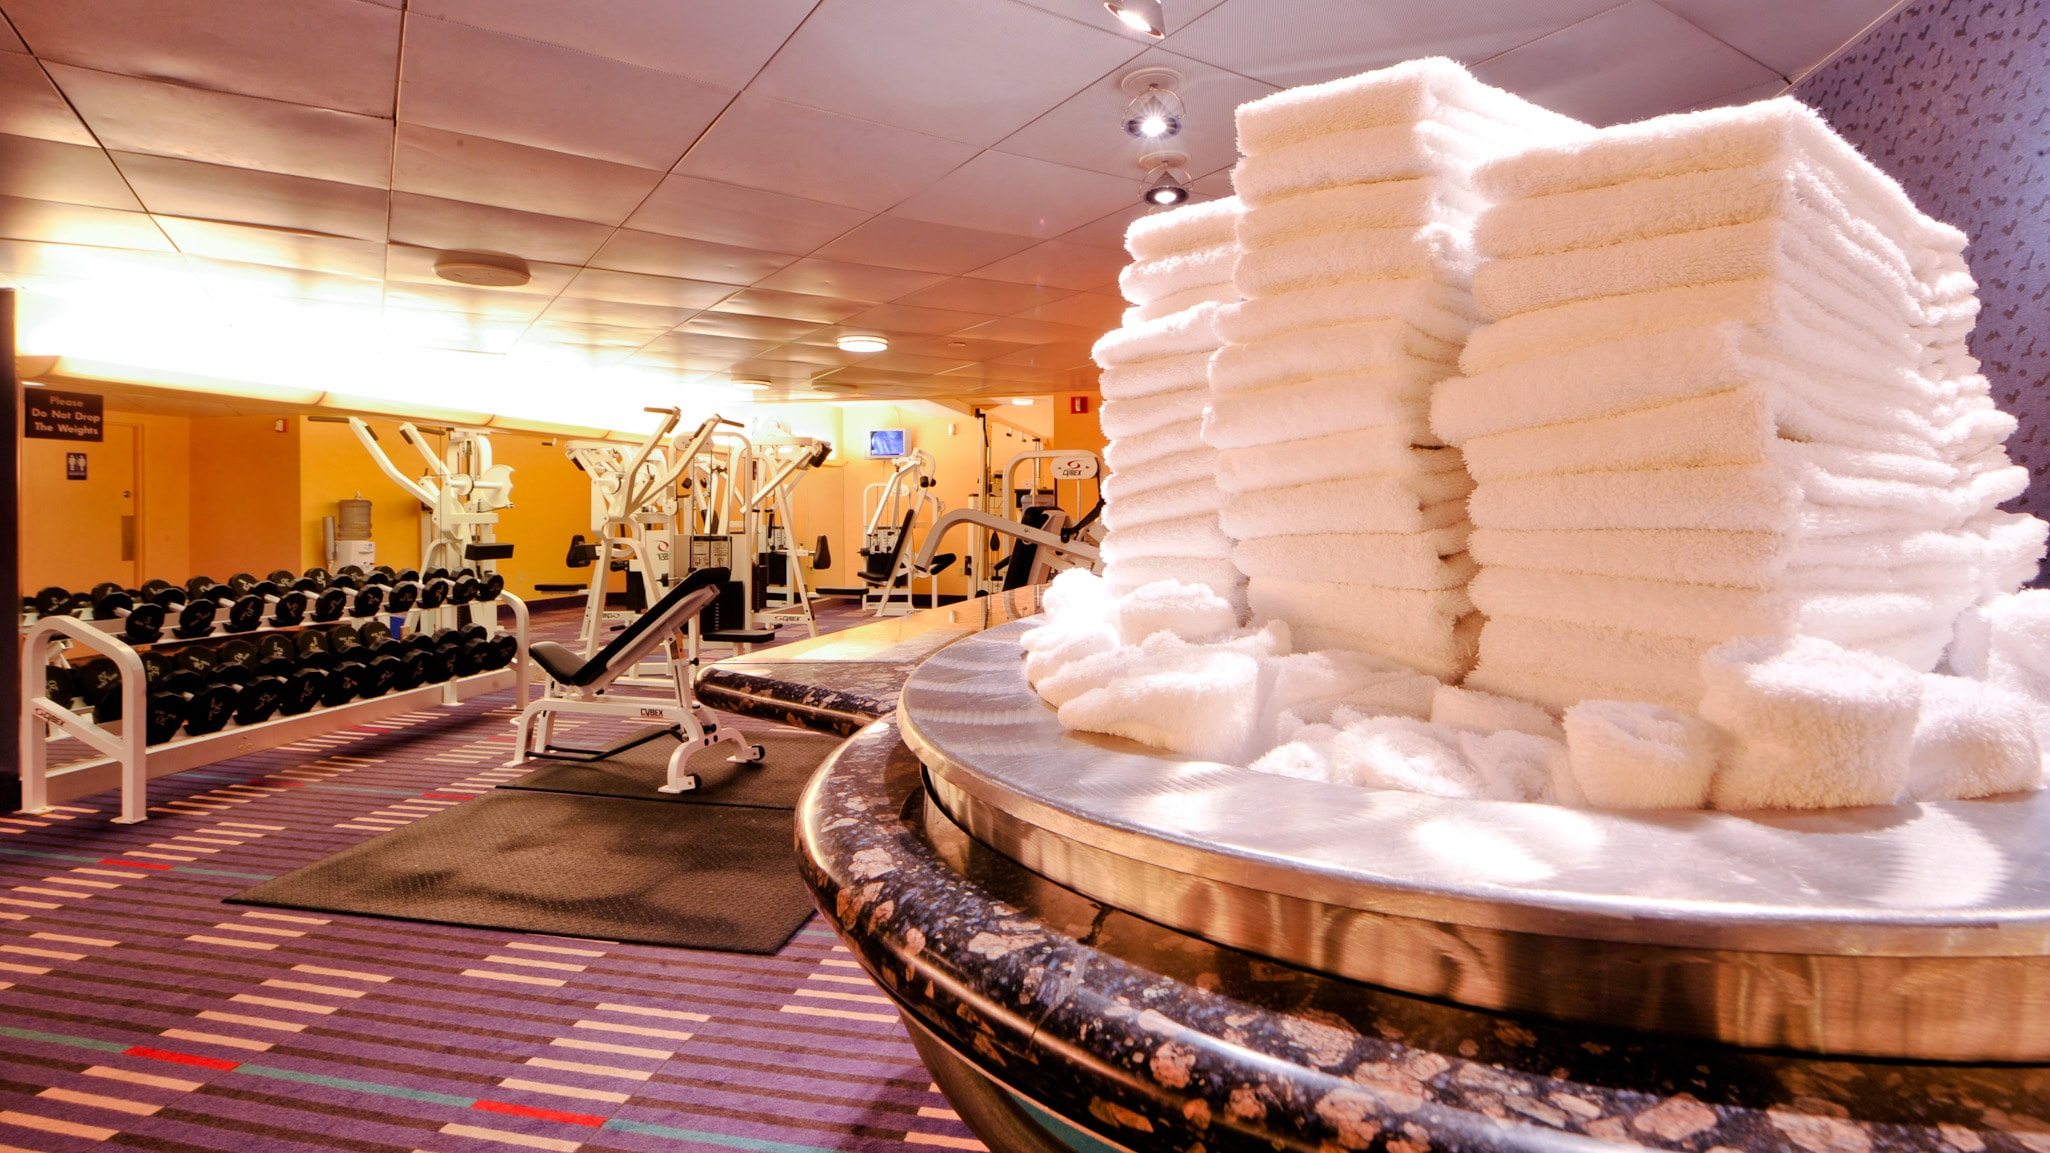 3 piles of folded white towels on a marble table in a workout room with free weights and other workout equipment in the background